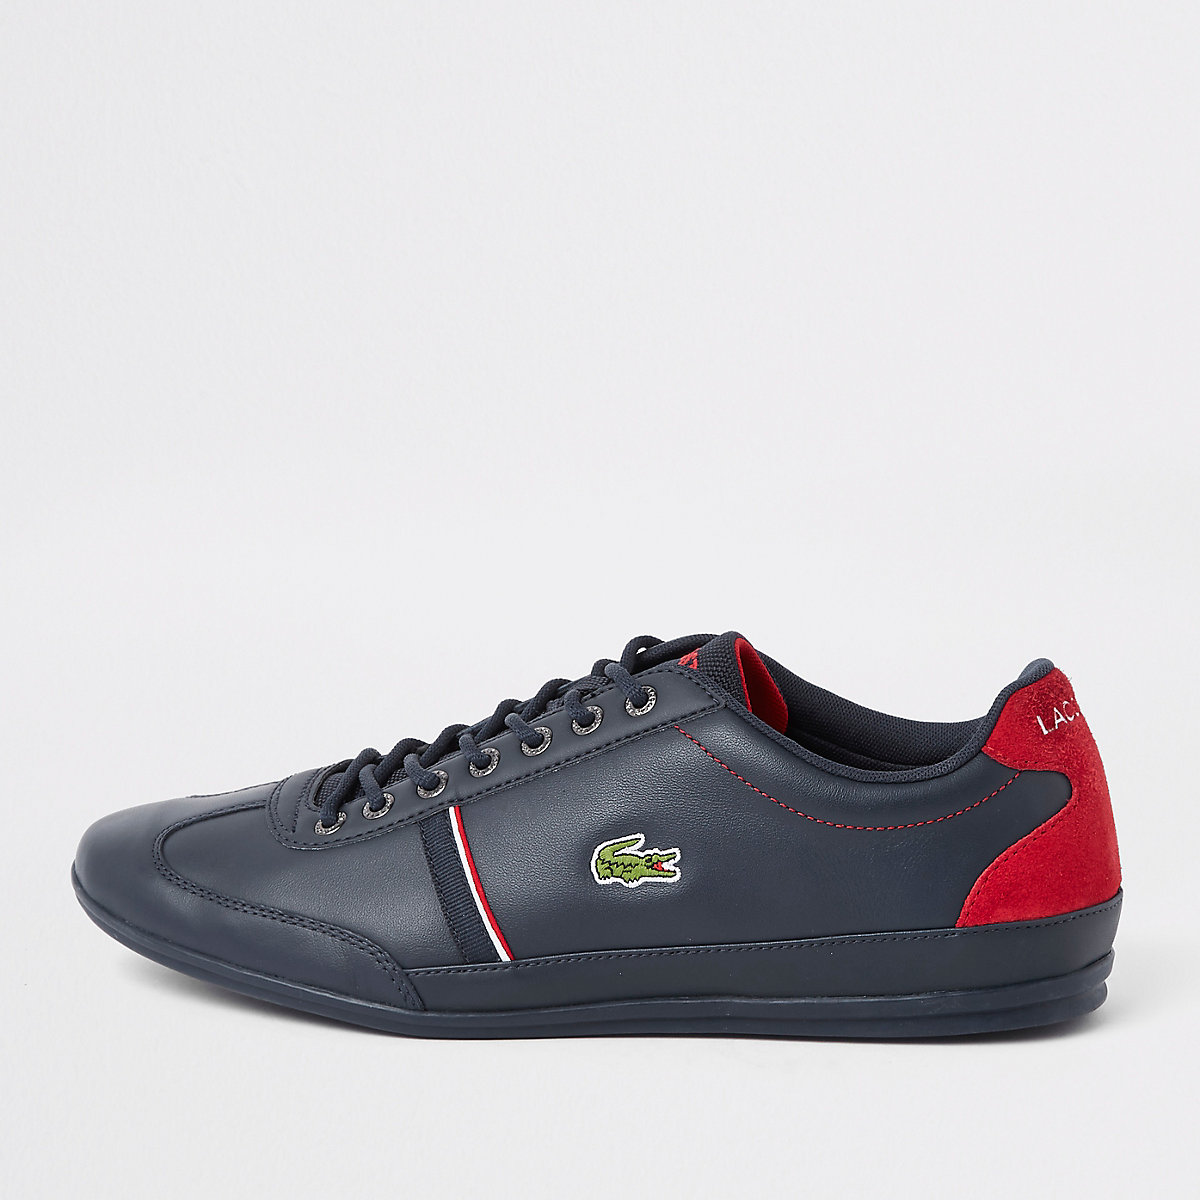 Lacoste navy leather tape lace-up sneakers